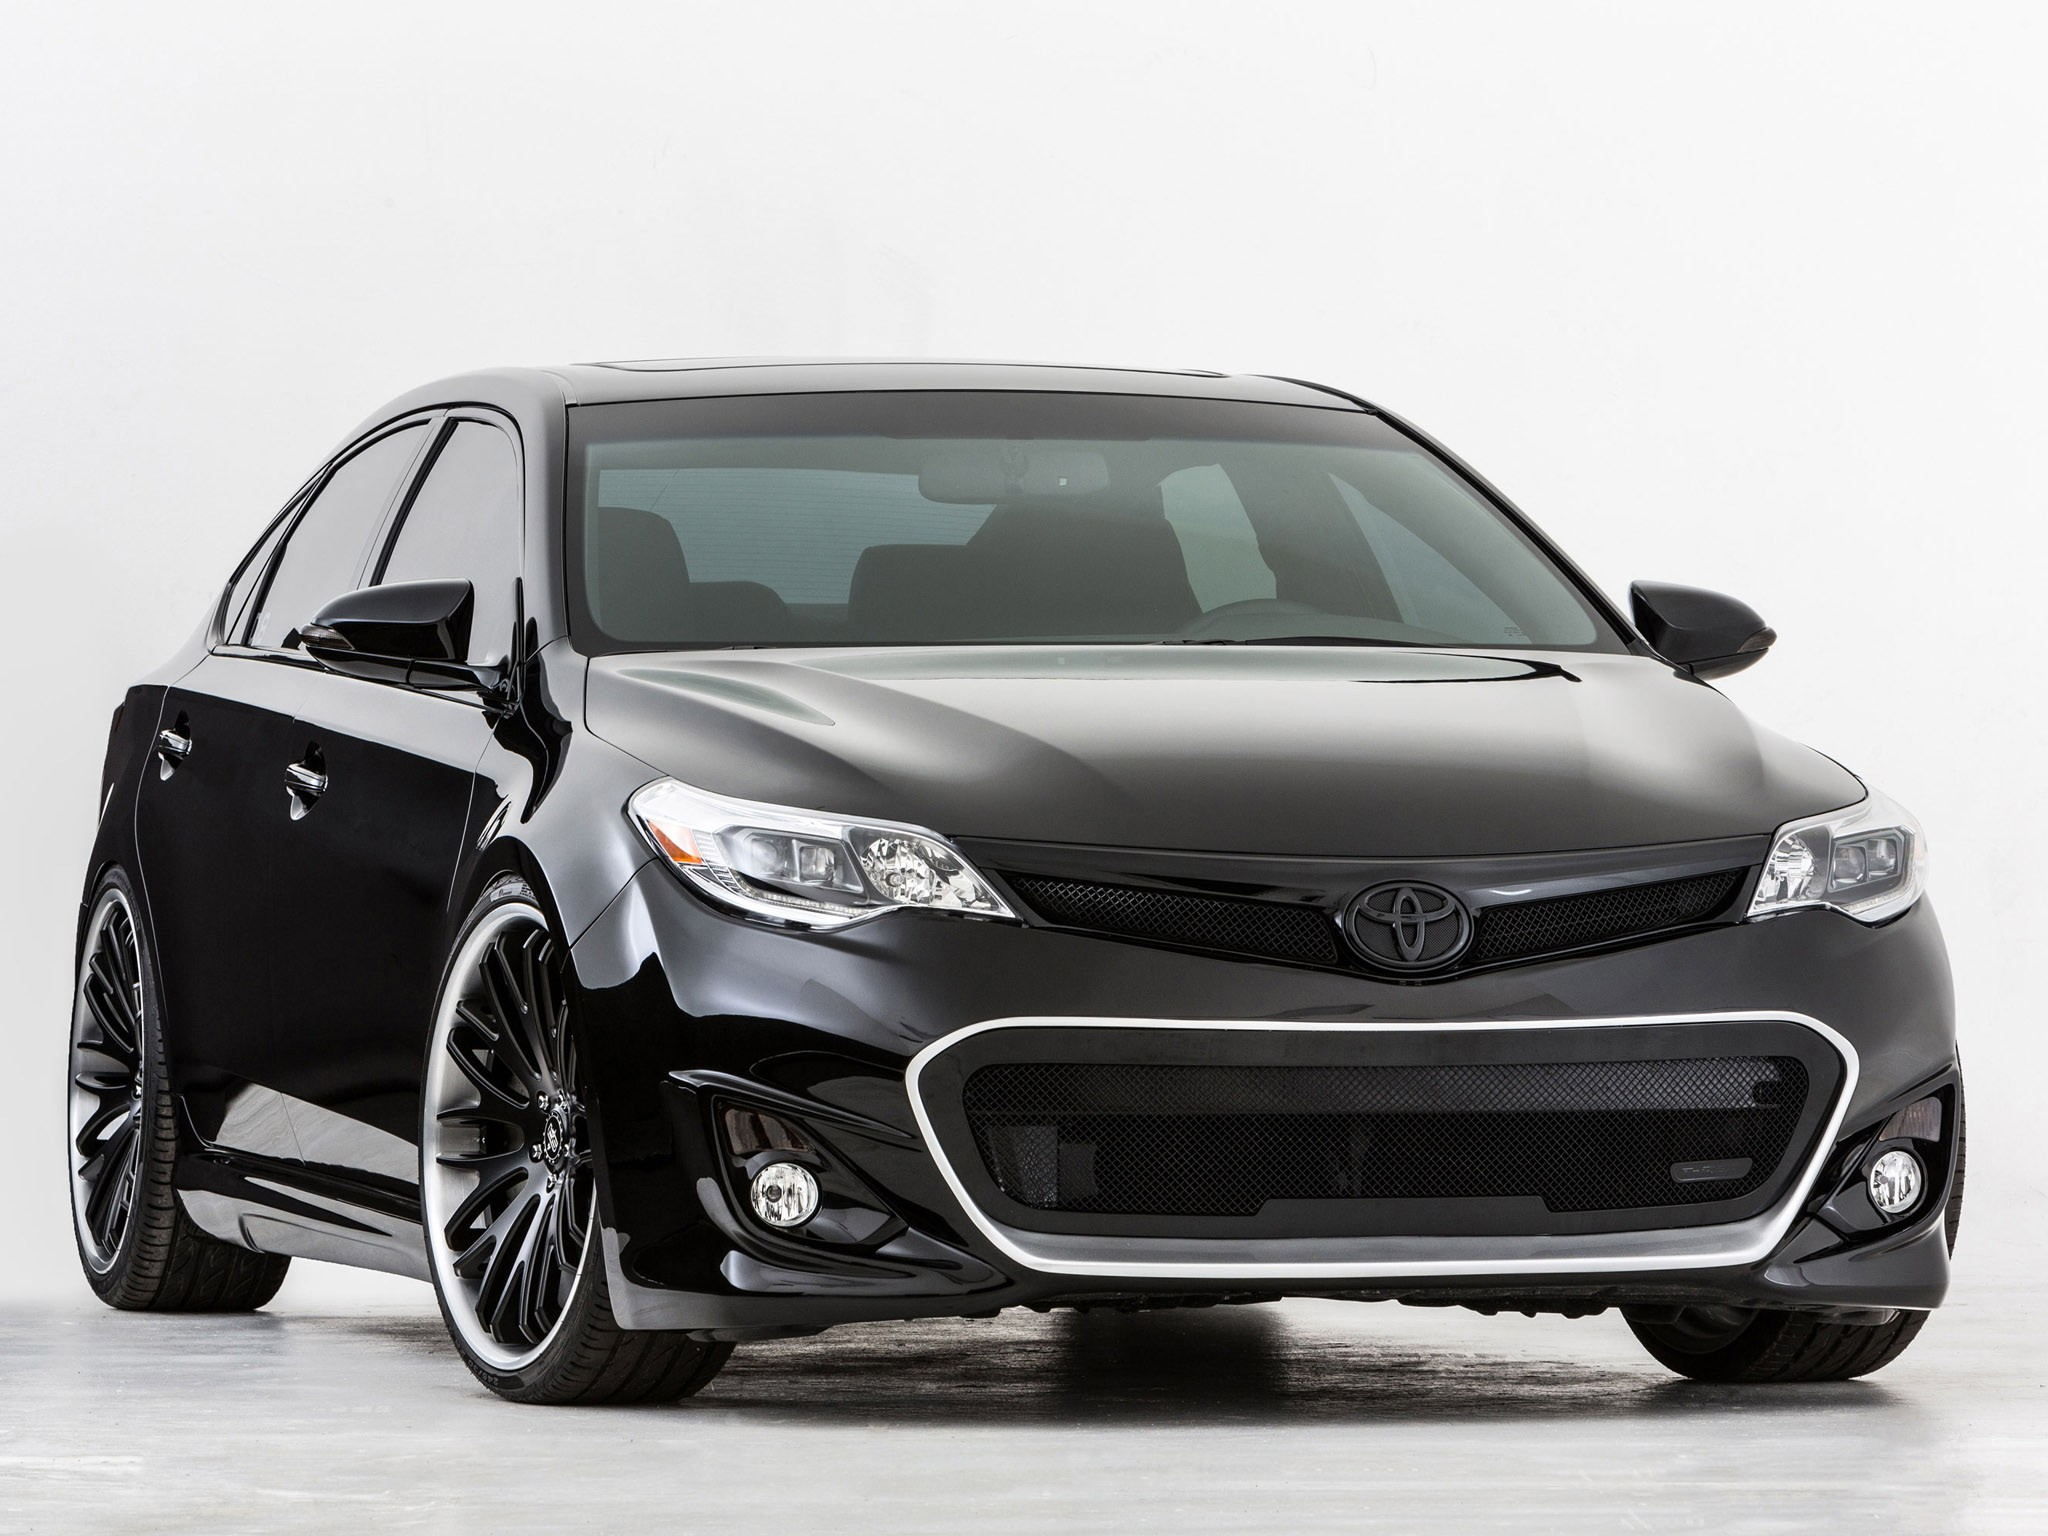 2012 Toyota Avalon Dub Edition